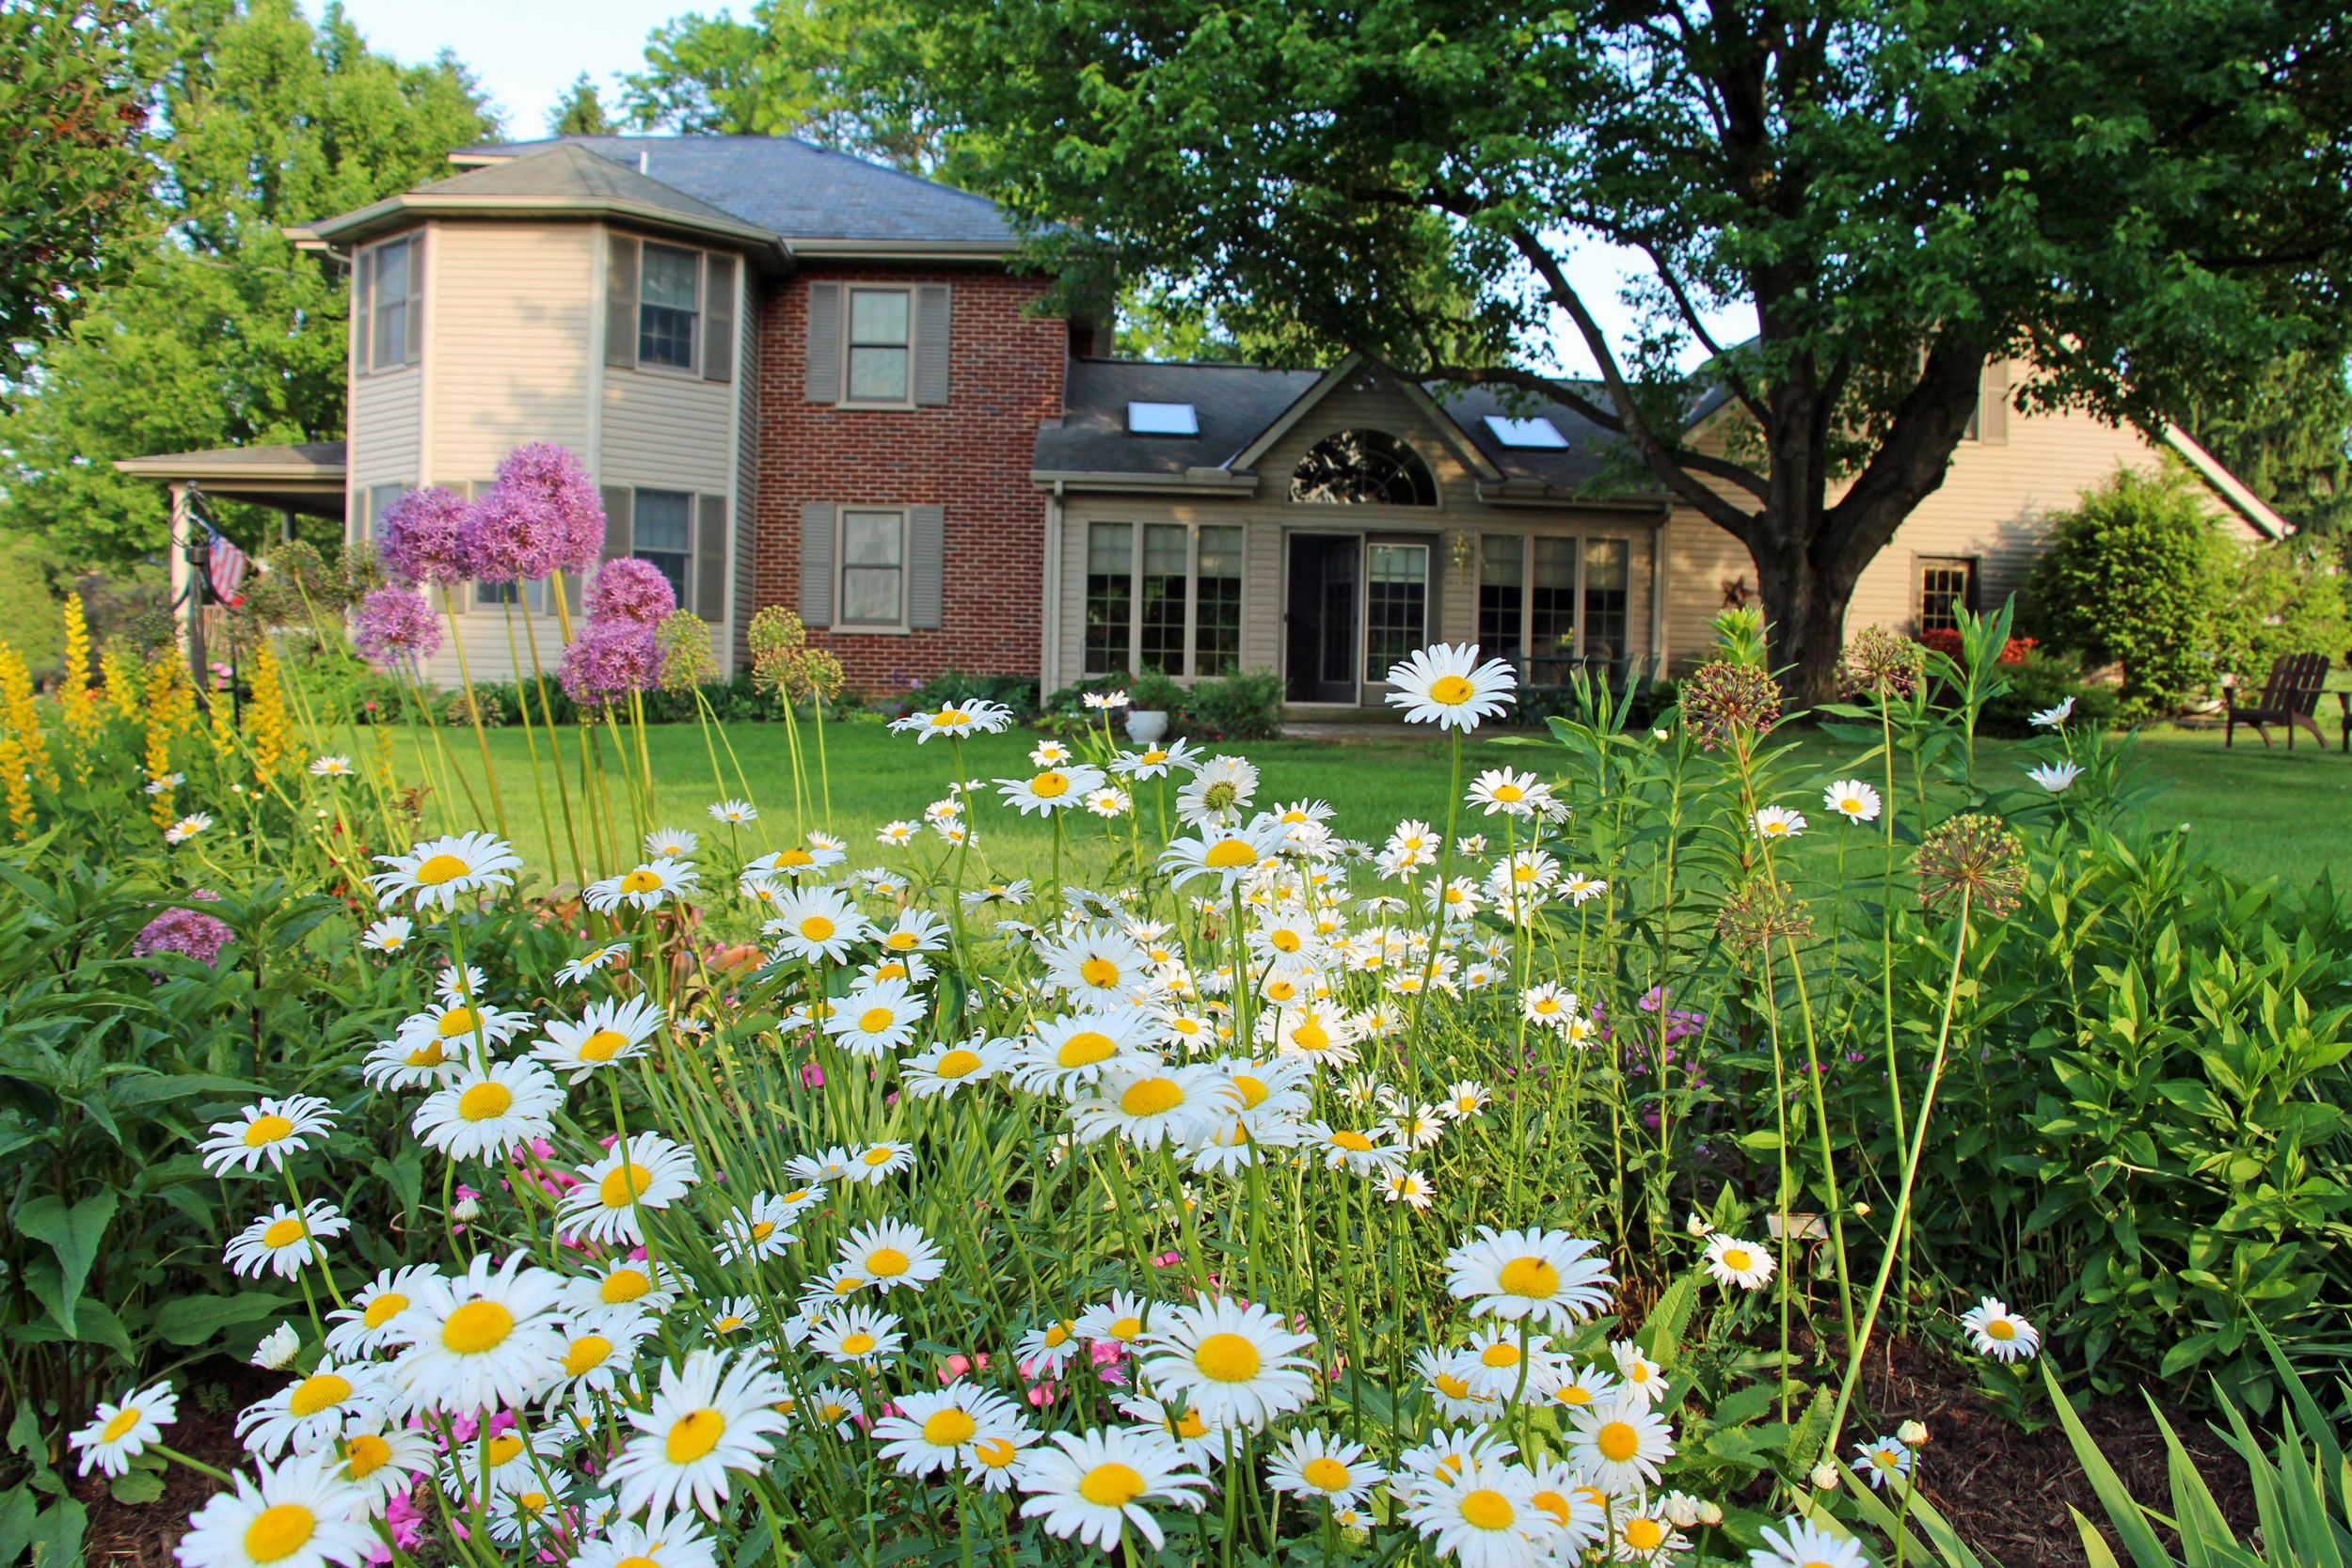 Flowers & Thyme Bed and Breakfast, Lancaster PA Bed and